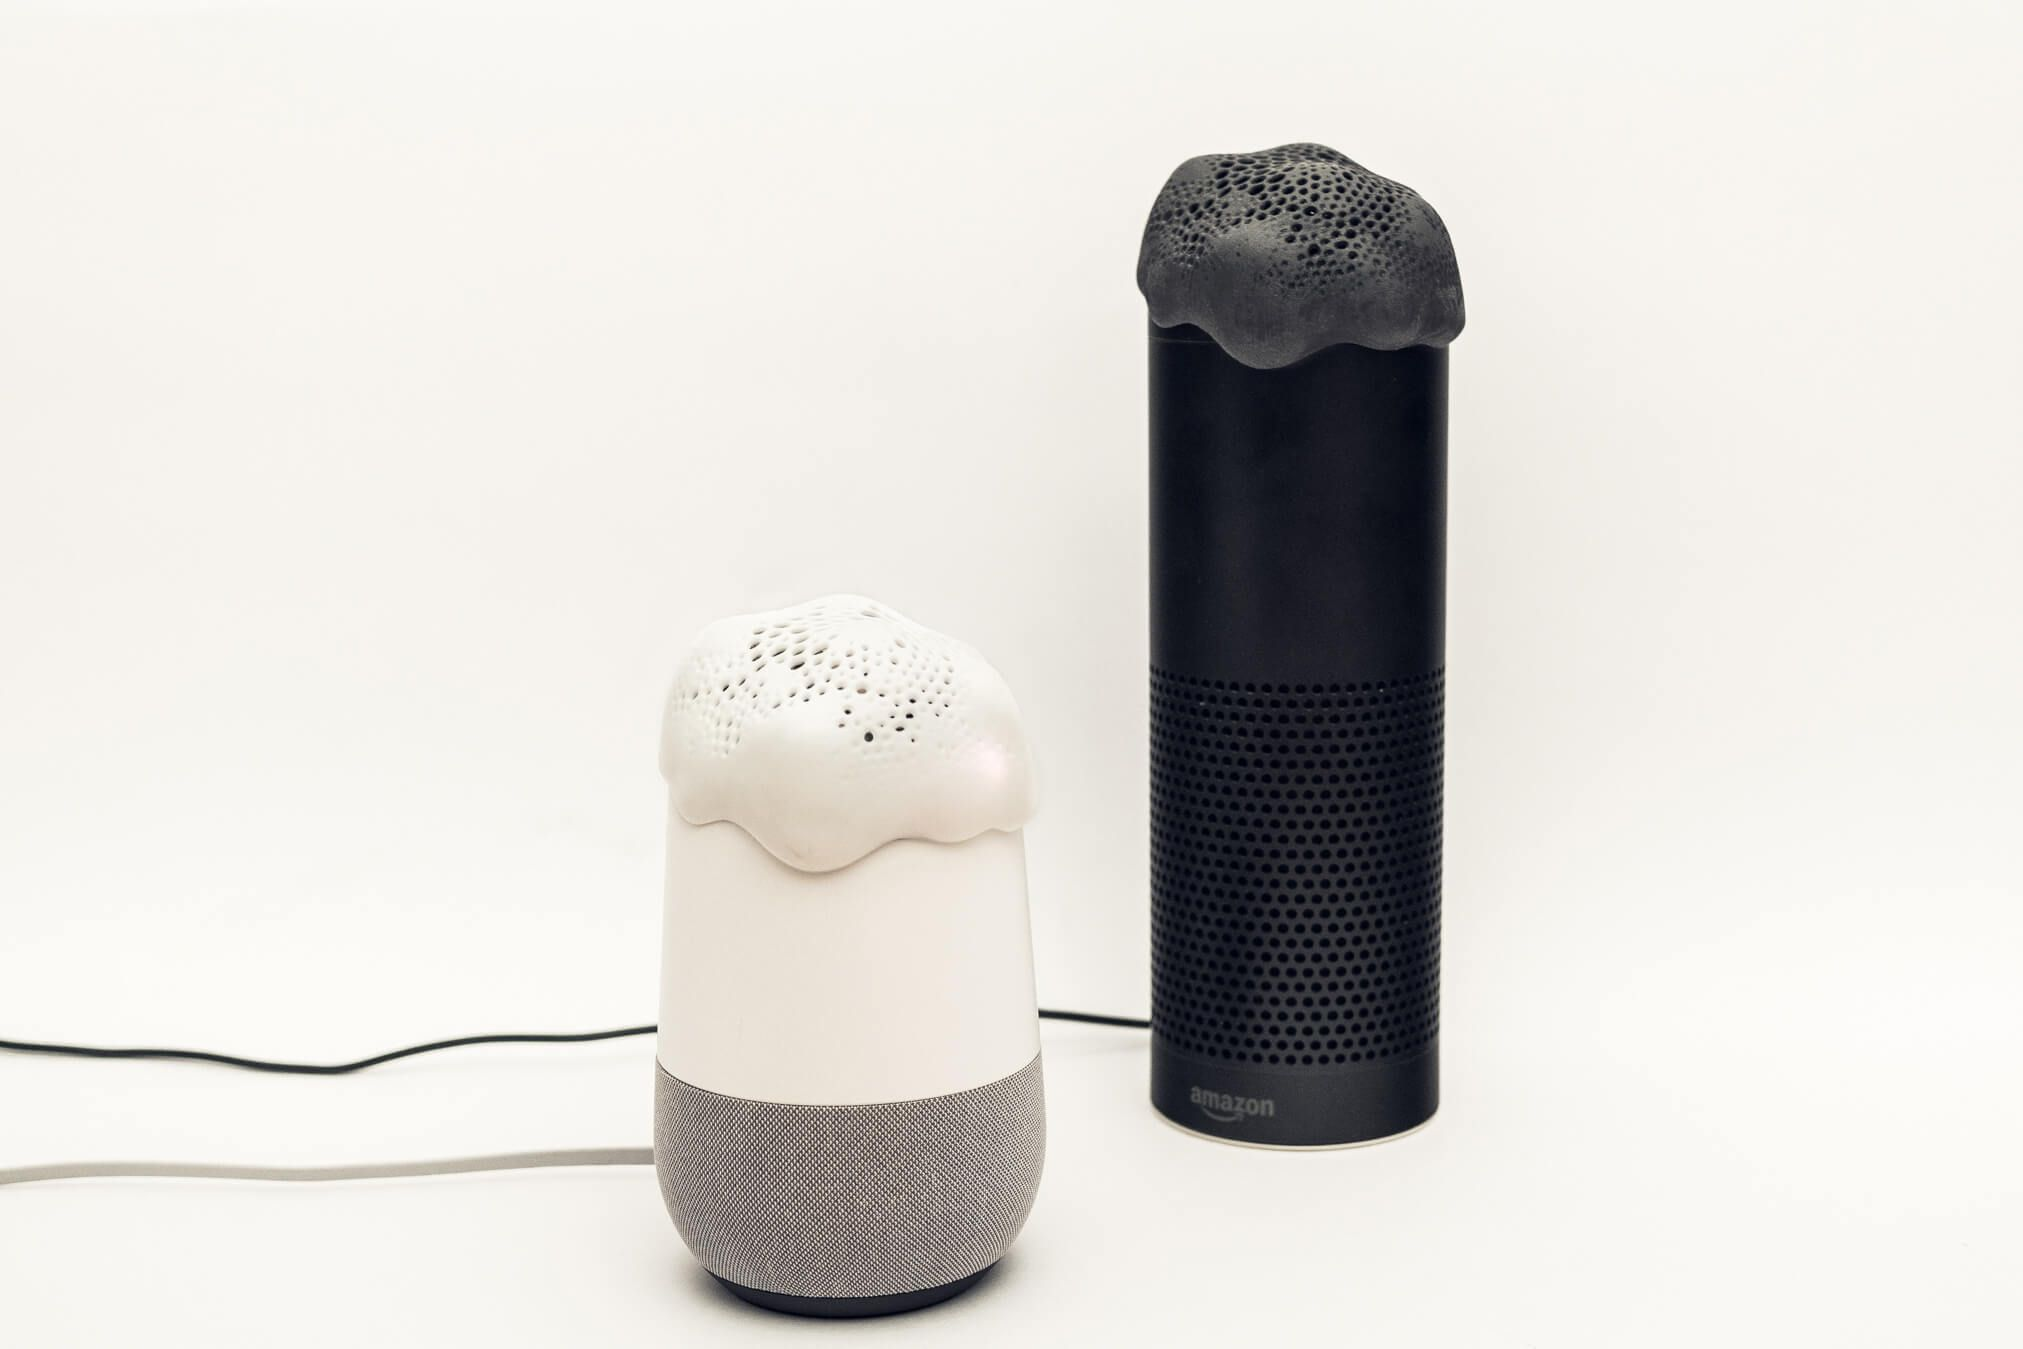 Alias cover for an Alexa or Google Home speaker